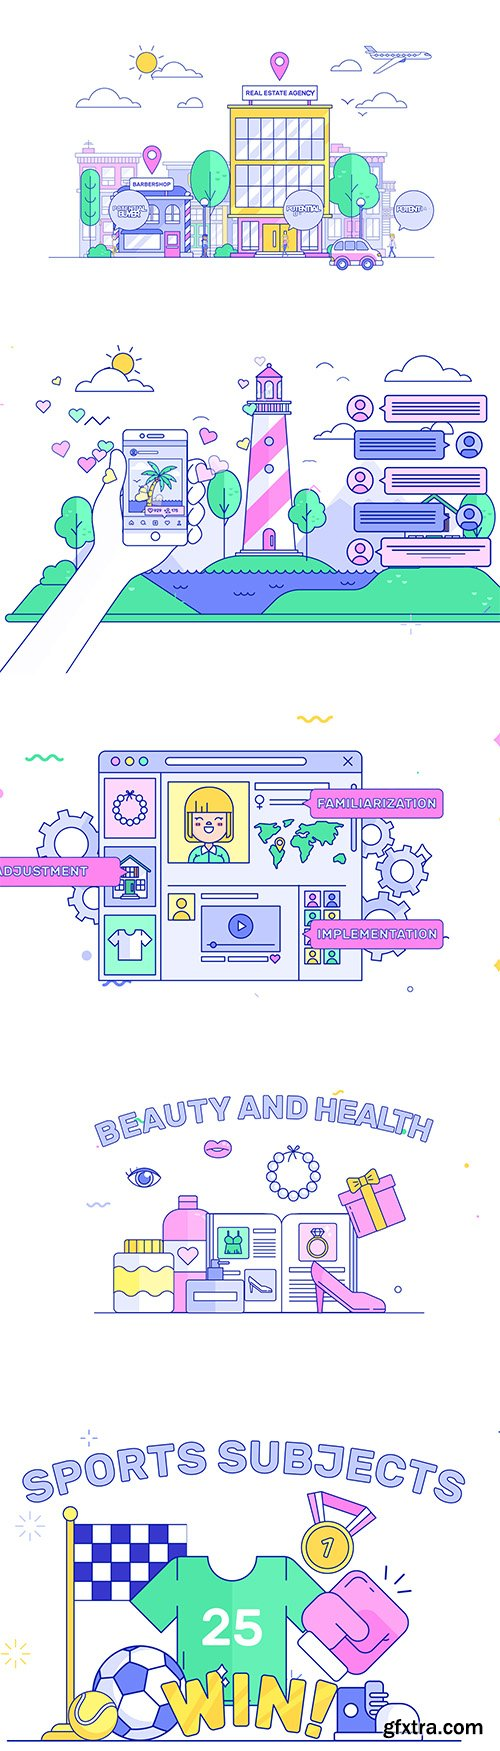 Videohive Explainer Video Toolkit 19804982